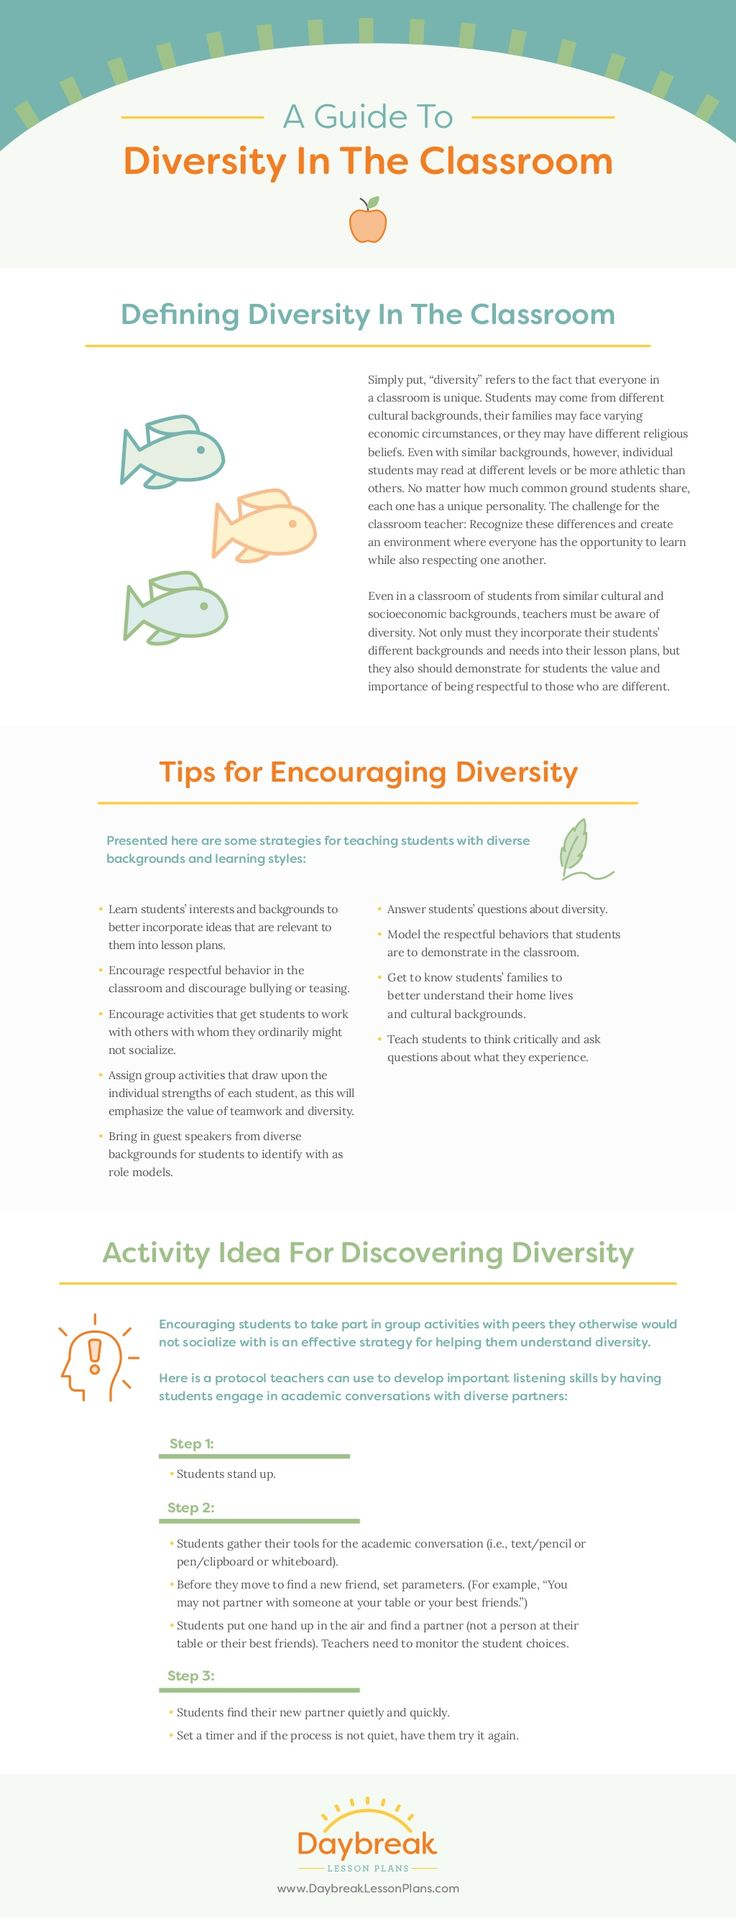 218 best smart infographics images on pinterest info graphics a guide to diversity in the classroom defining diversity in the classroom simply put fandeluxe Choice Image